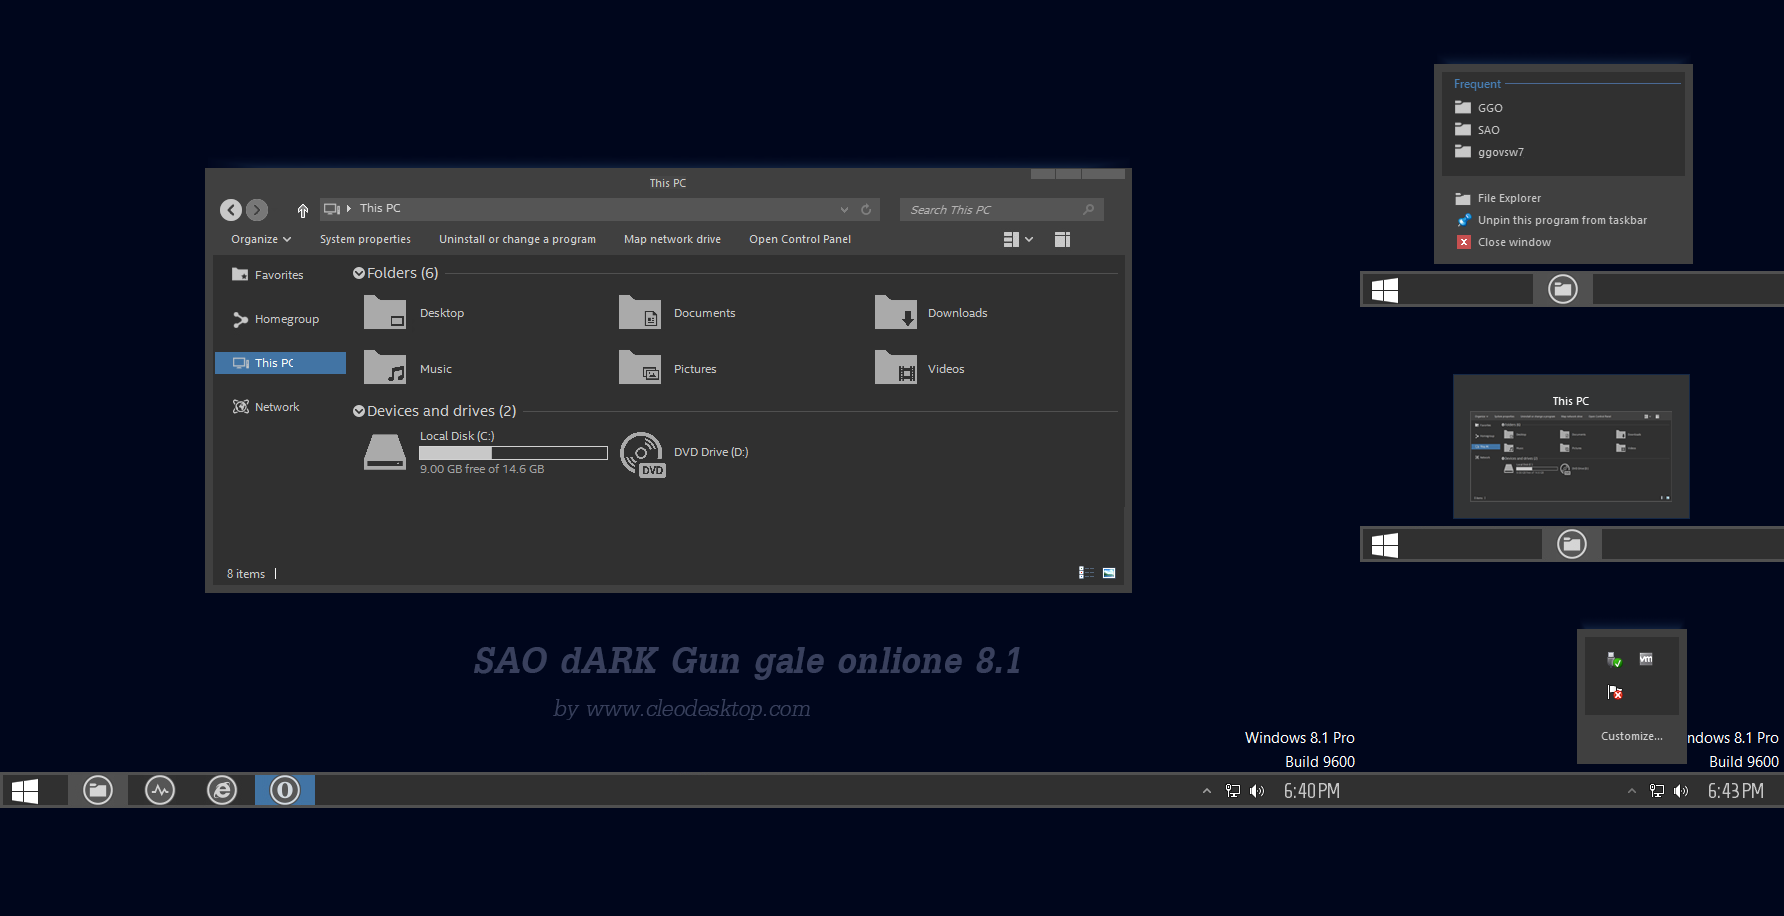 SAO dARK Theme Windows 8 1 by Cleodesktop on DeviantArt